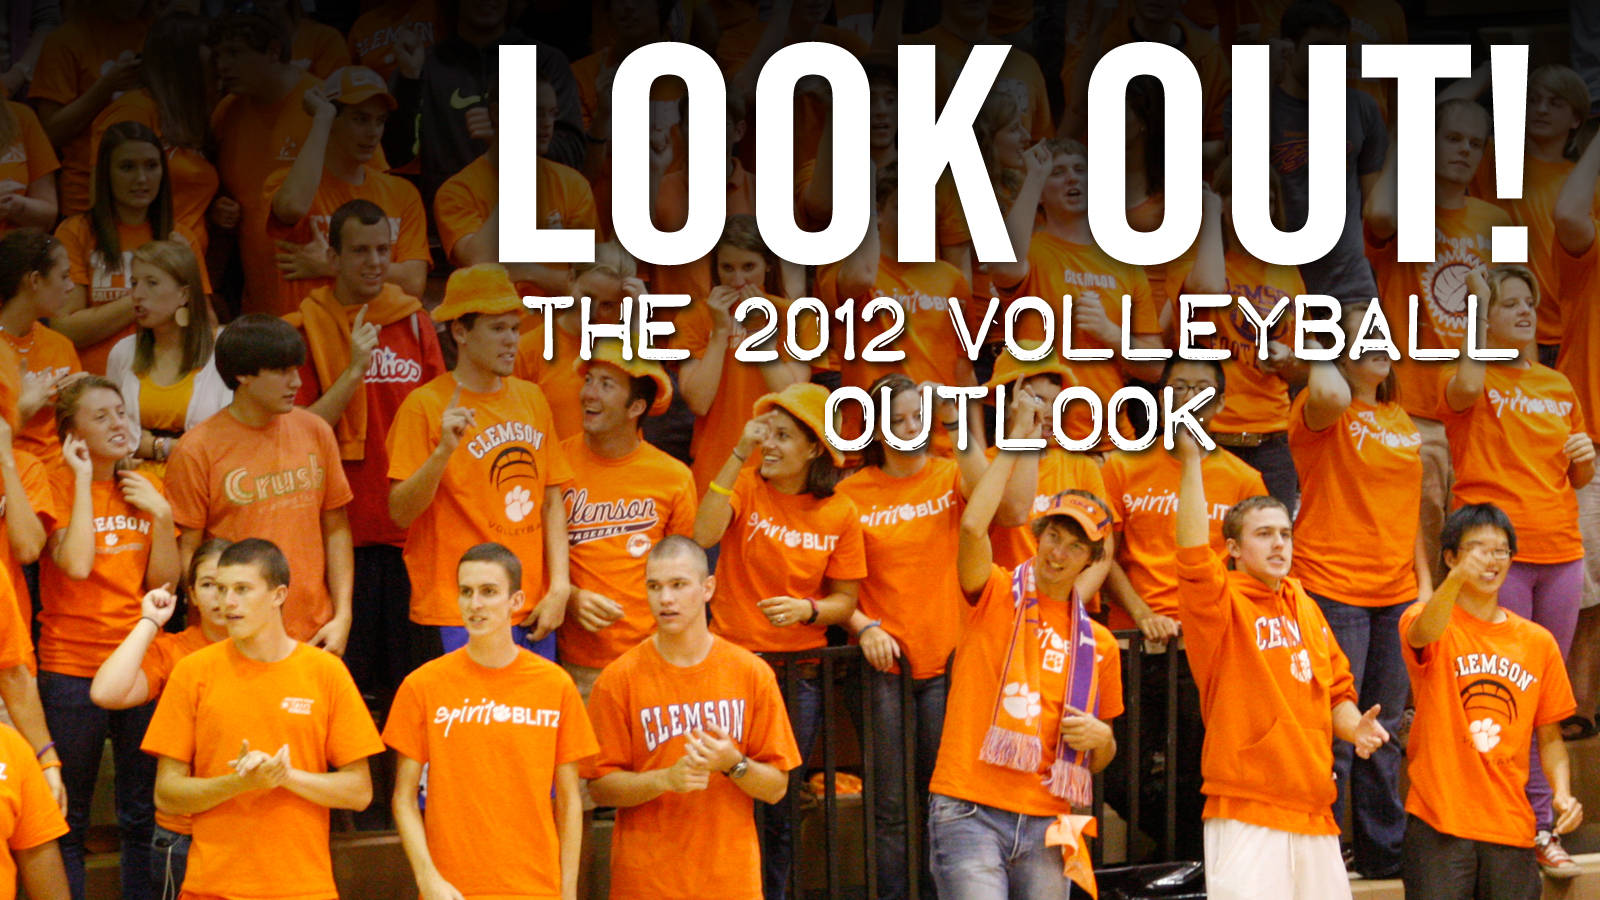 2012 Volleyball Outlook